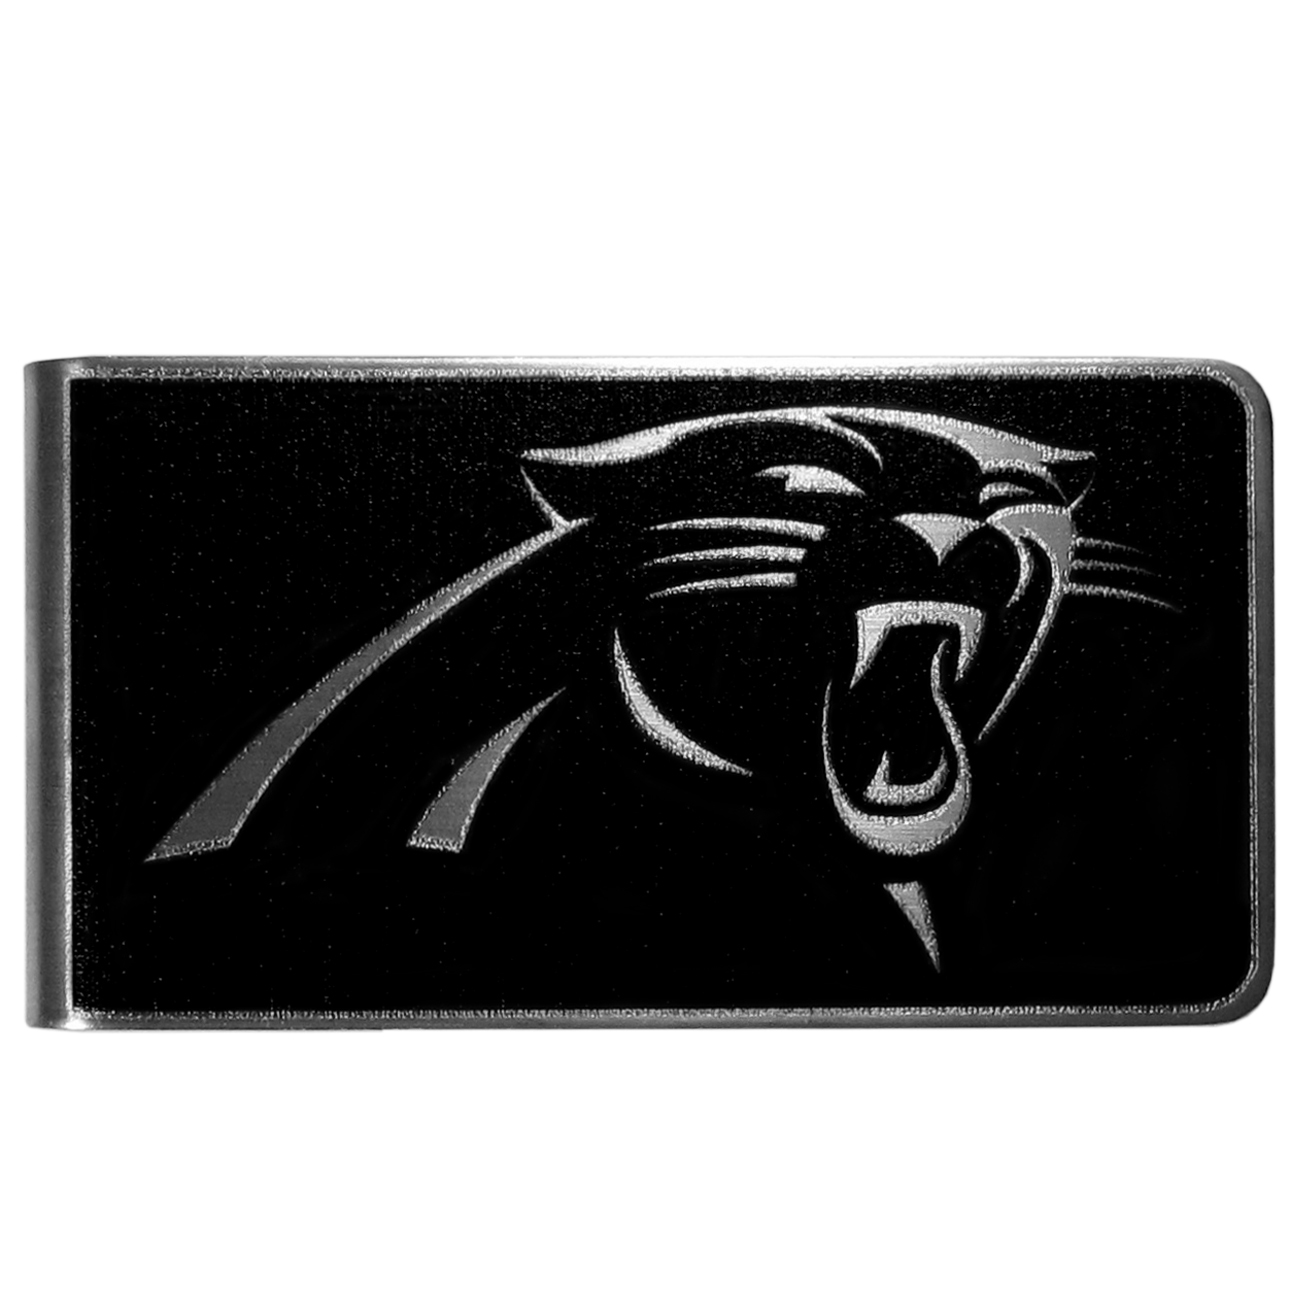 Carolina Panthers Black and Steel Money Clip - Our monochromatic steel money clips have a classic style and superior quality. The strong, steel clip has a black overlay of the Carolina Panthers logo over the brushed metal finish creating a stylish men's fashion accessory that would make any fan proud.